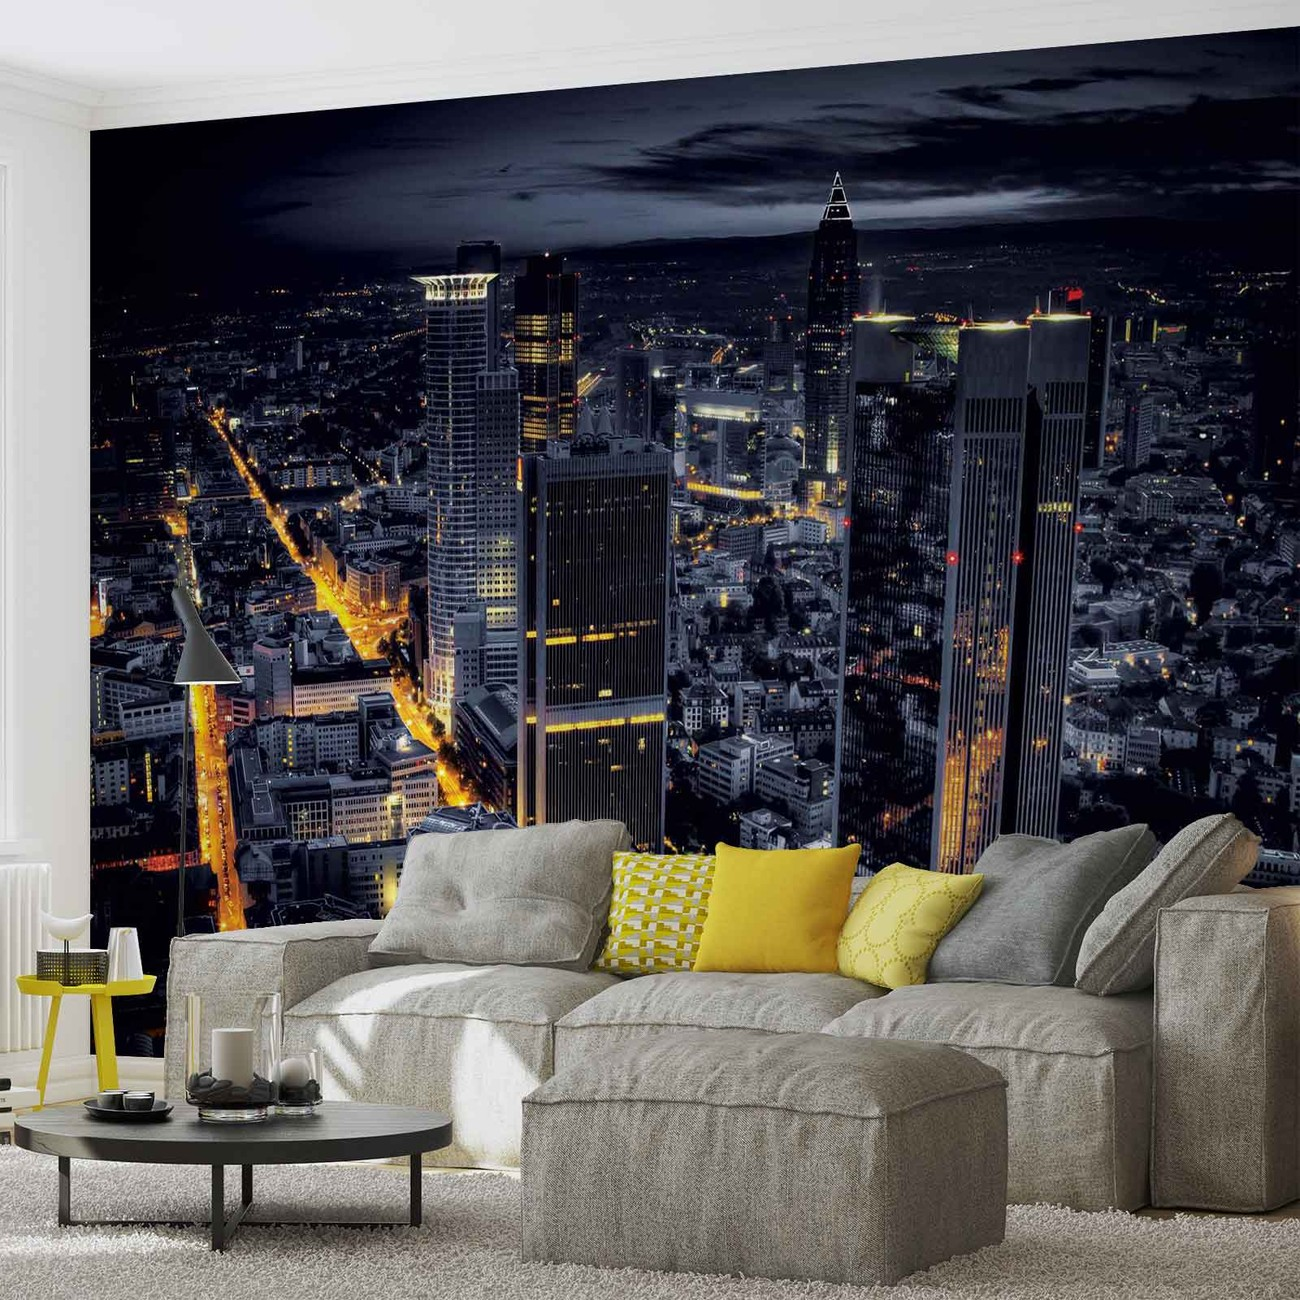 City frankfurt skyline night lights wall paper mural buy for City lights mural